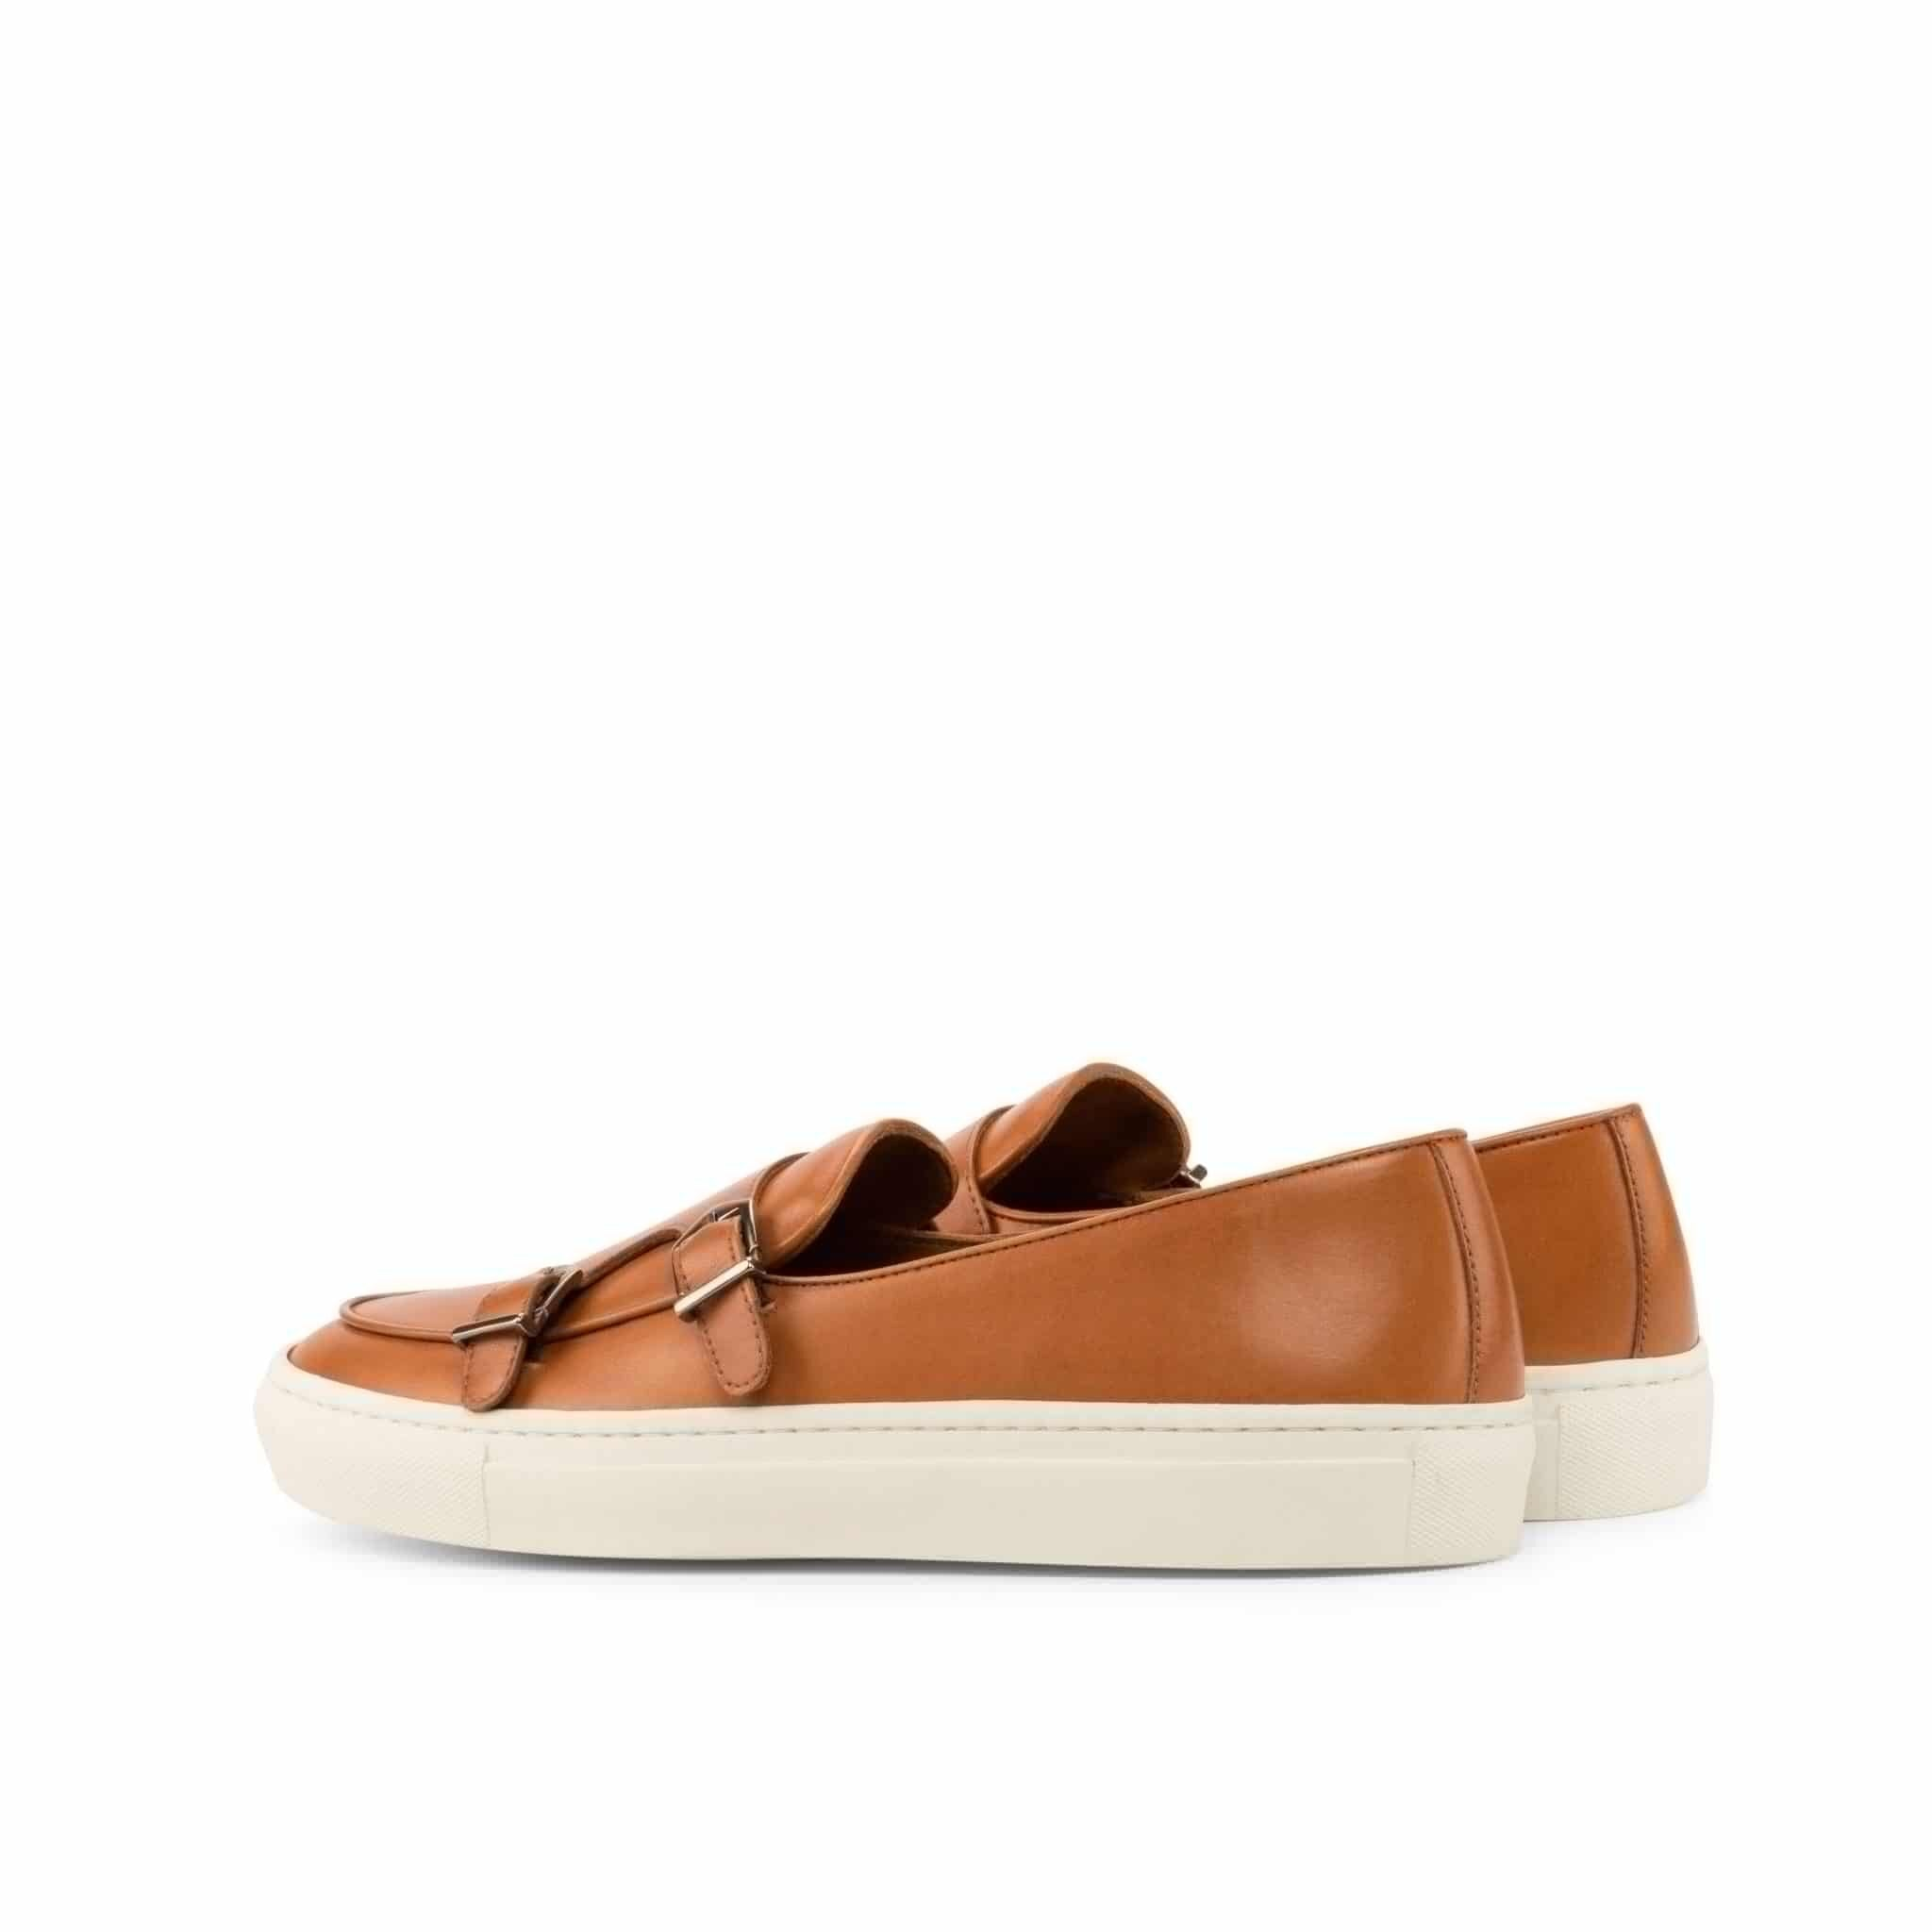 Tan Leather Slip On Monk Strap Sneaker for Men. White Comfortable Cup Sole.